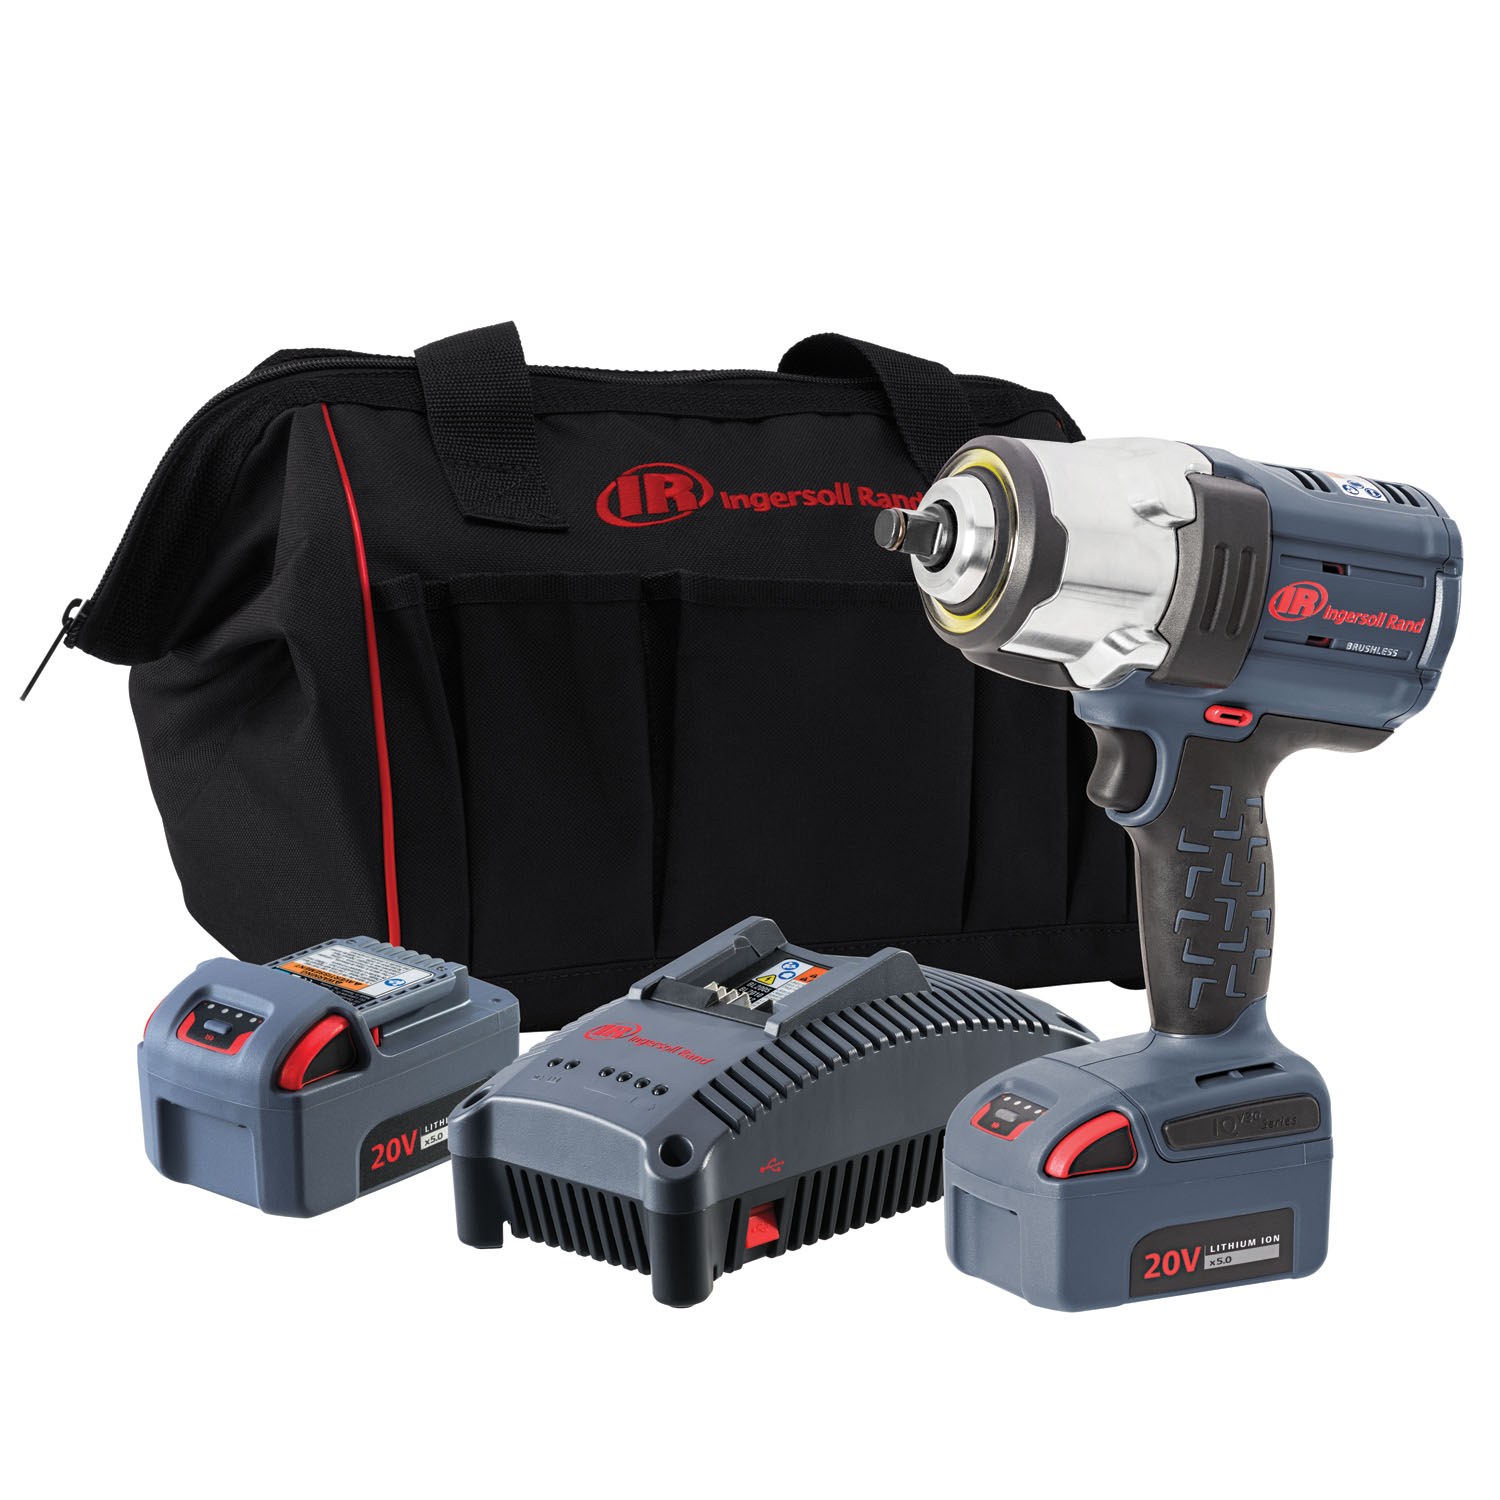 Ingersoll Rand ½½ IQV20 Impact Wrench, 2 Battery Kit